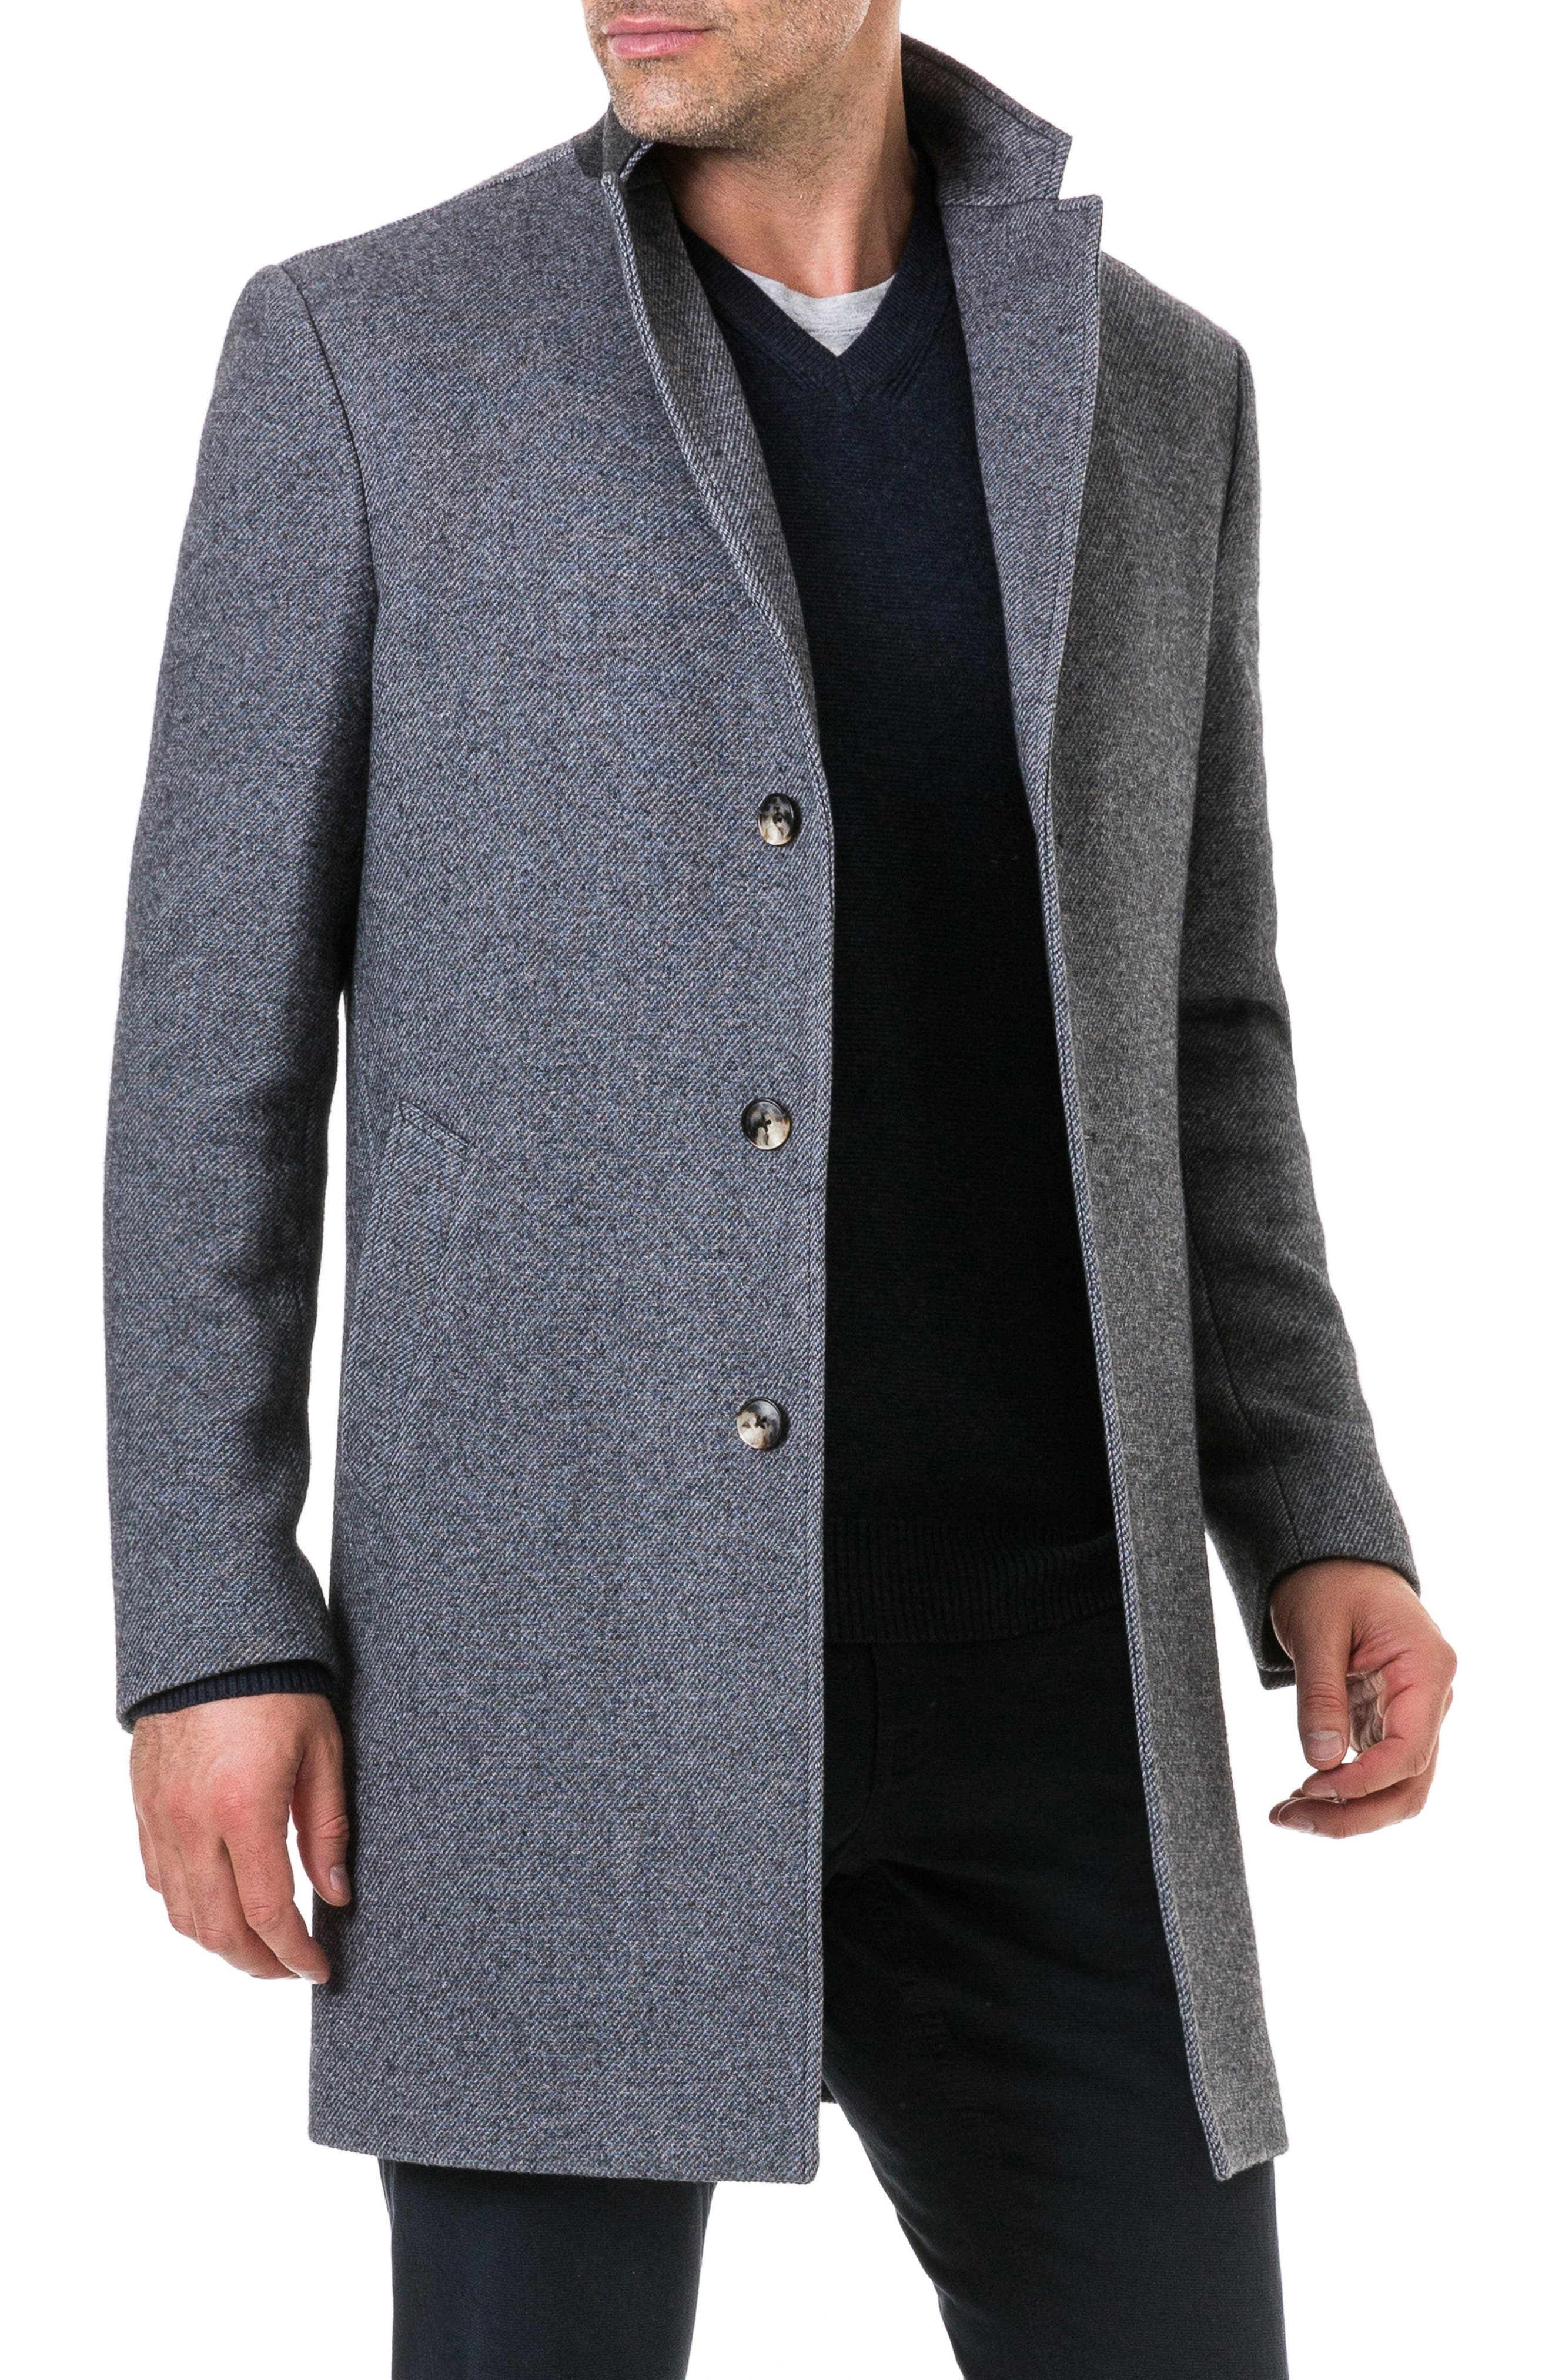 Calton Hill Wool Blend Coat,                             Alternate thumbnail 6, color,                             020